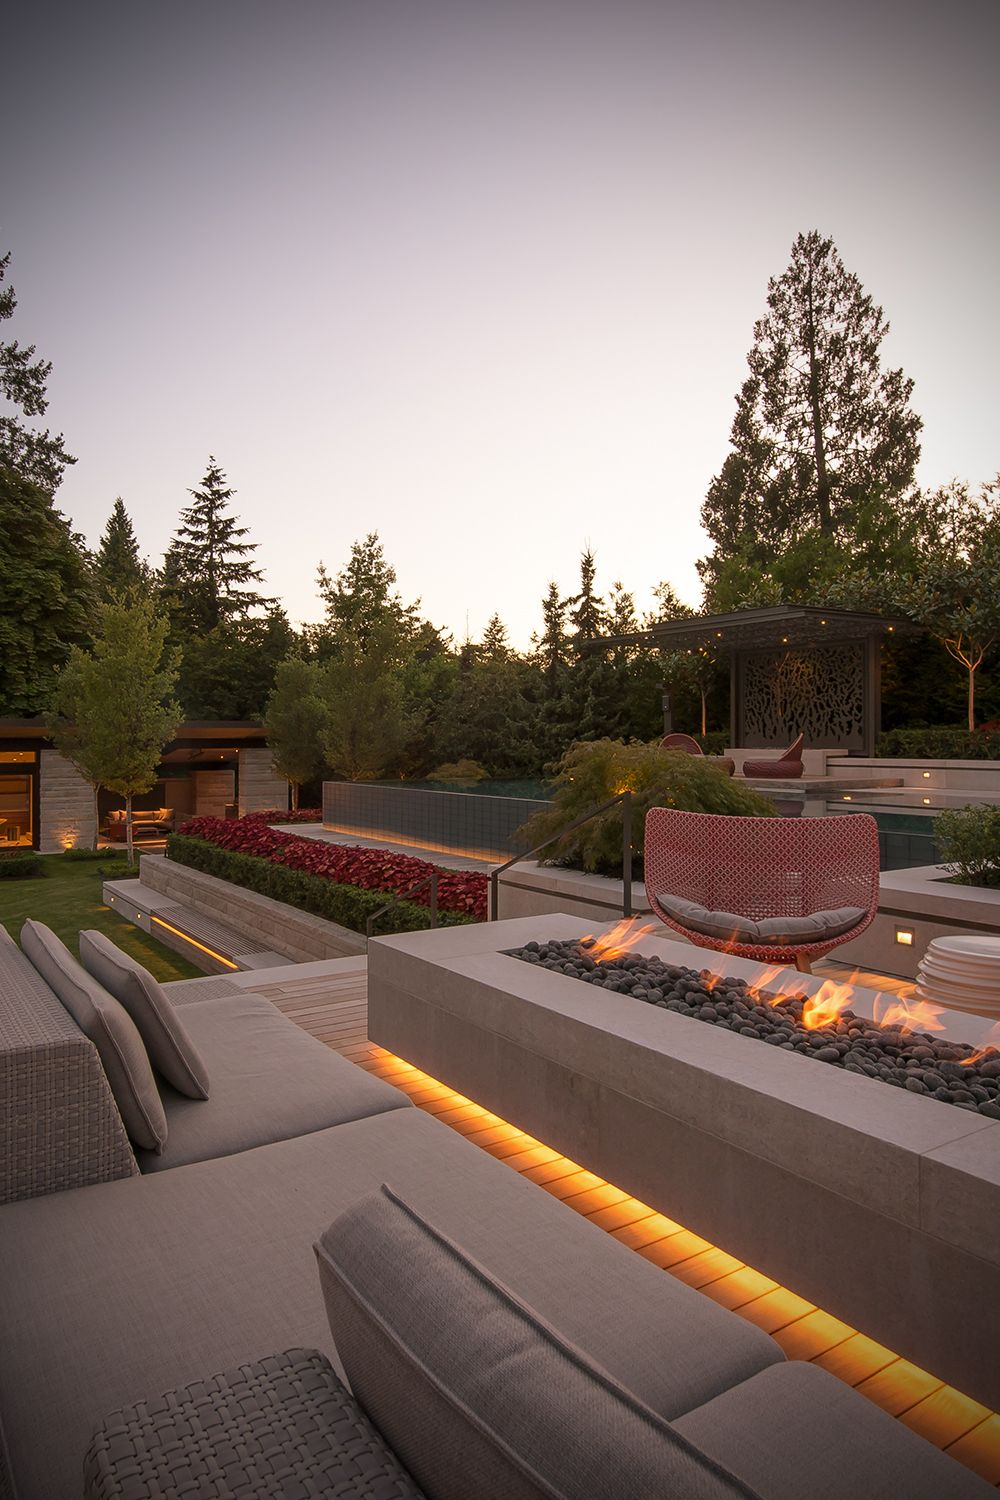 Pool guest house outdoor fireplace stone patio modern rustic luxury design